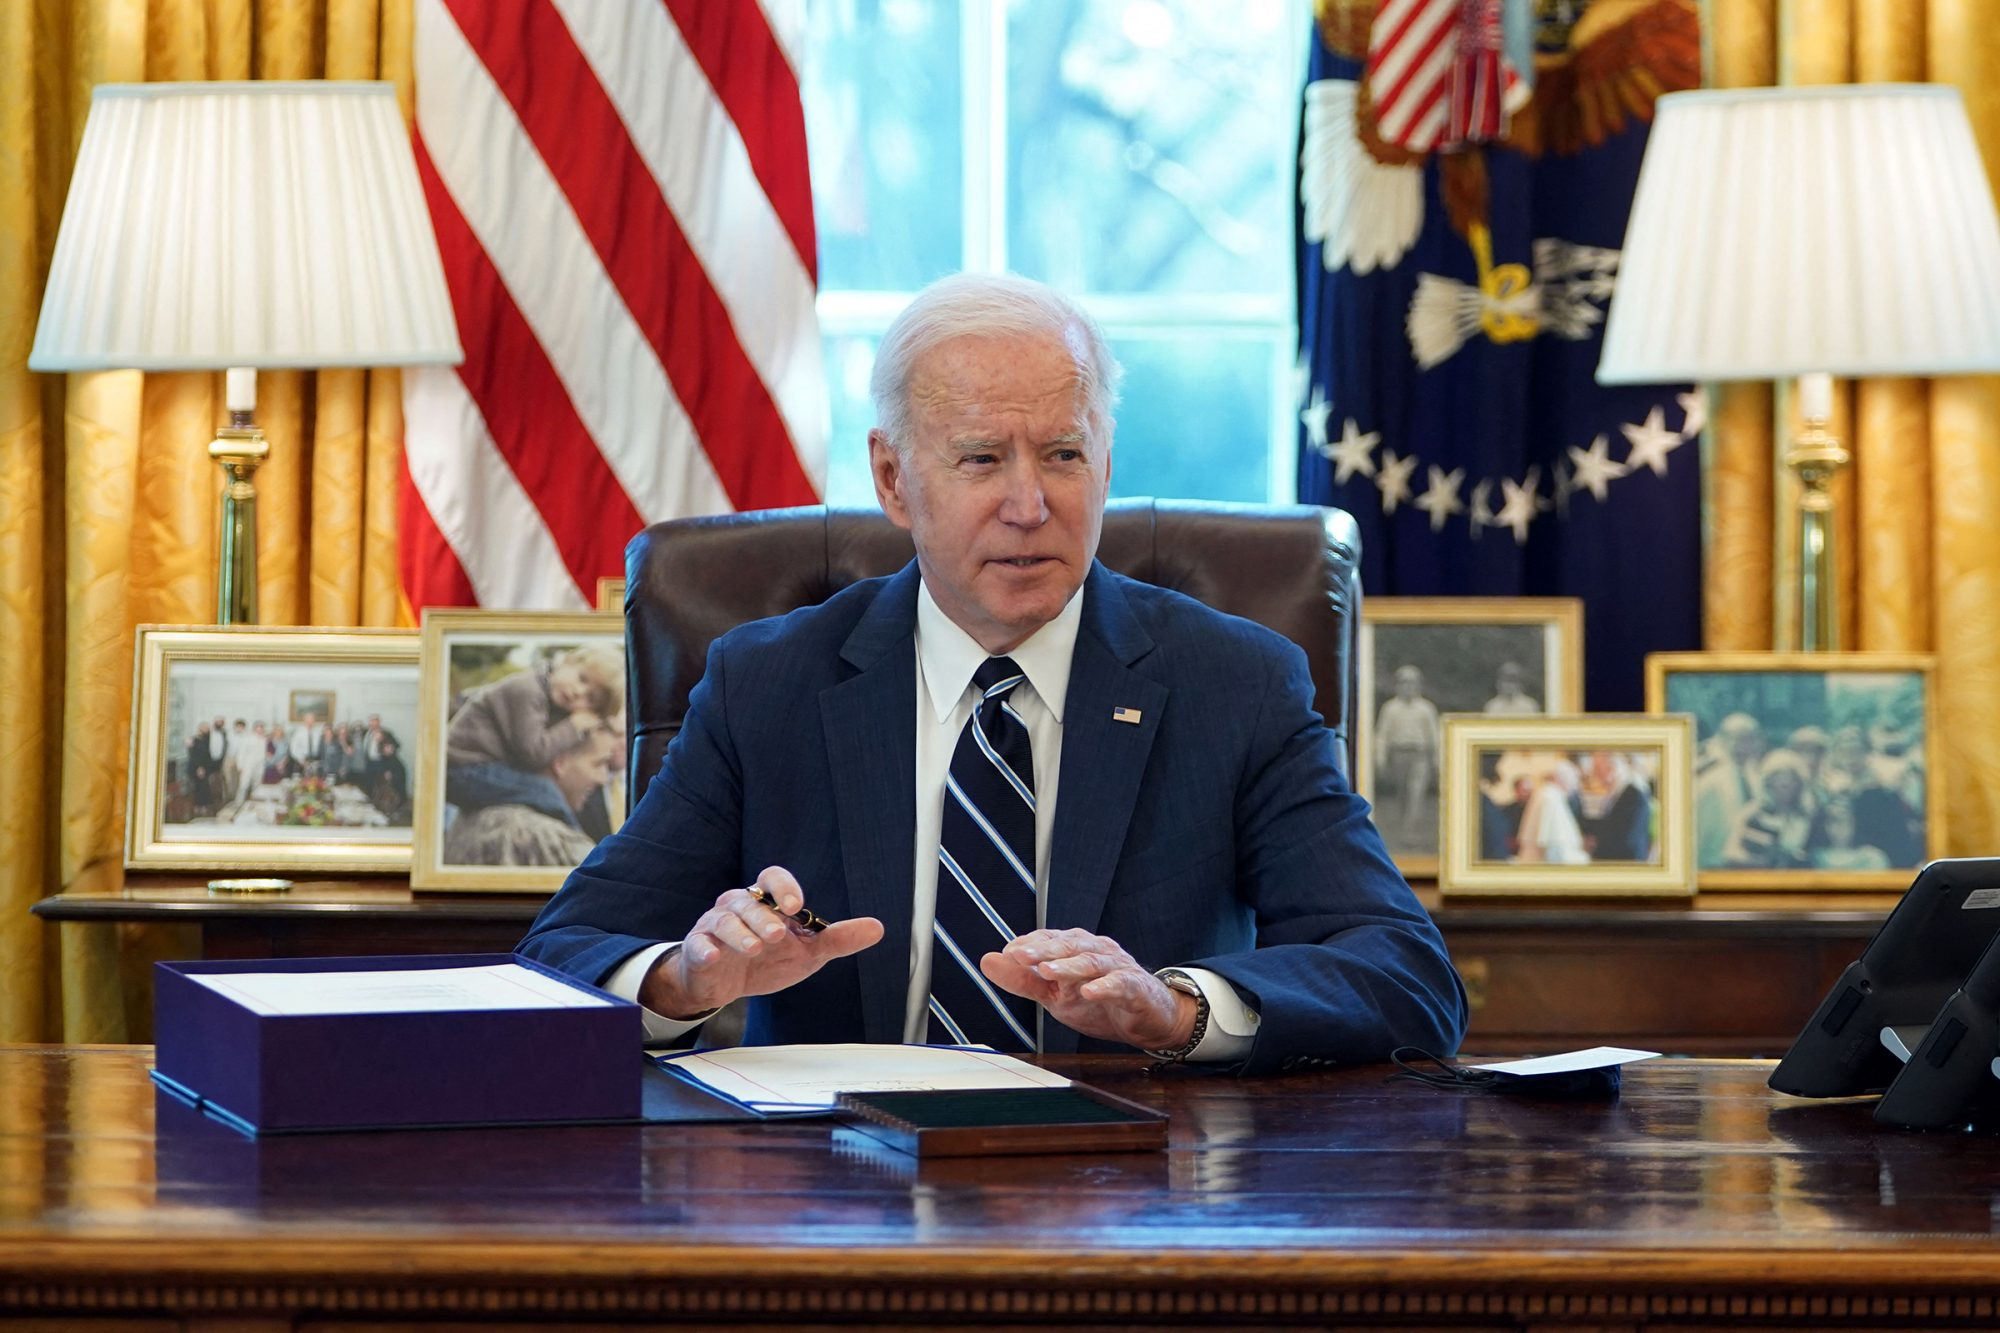 Joe Biden signs the American Rescue Plan on March 11, 2021